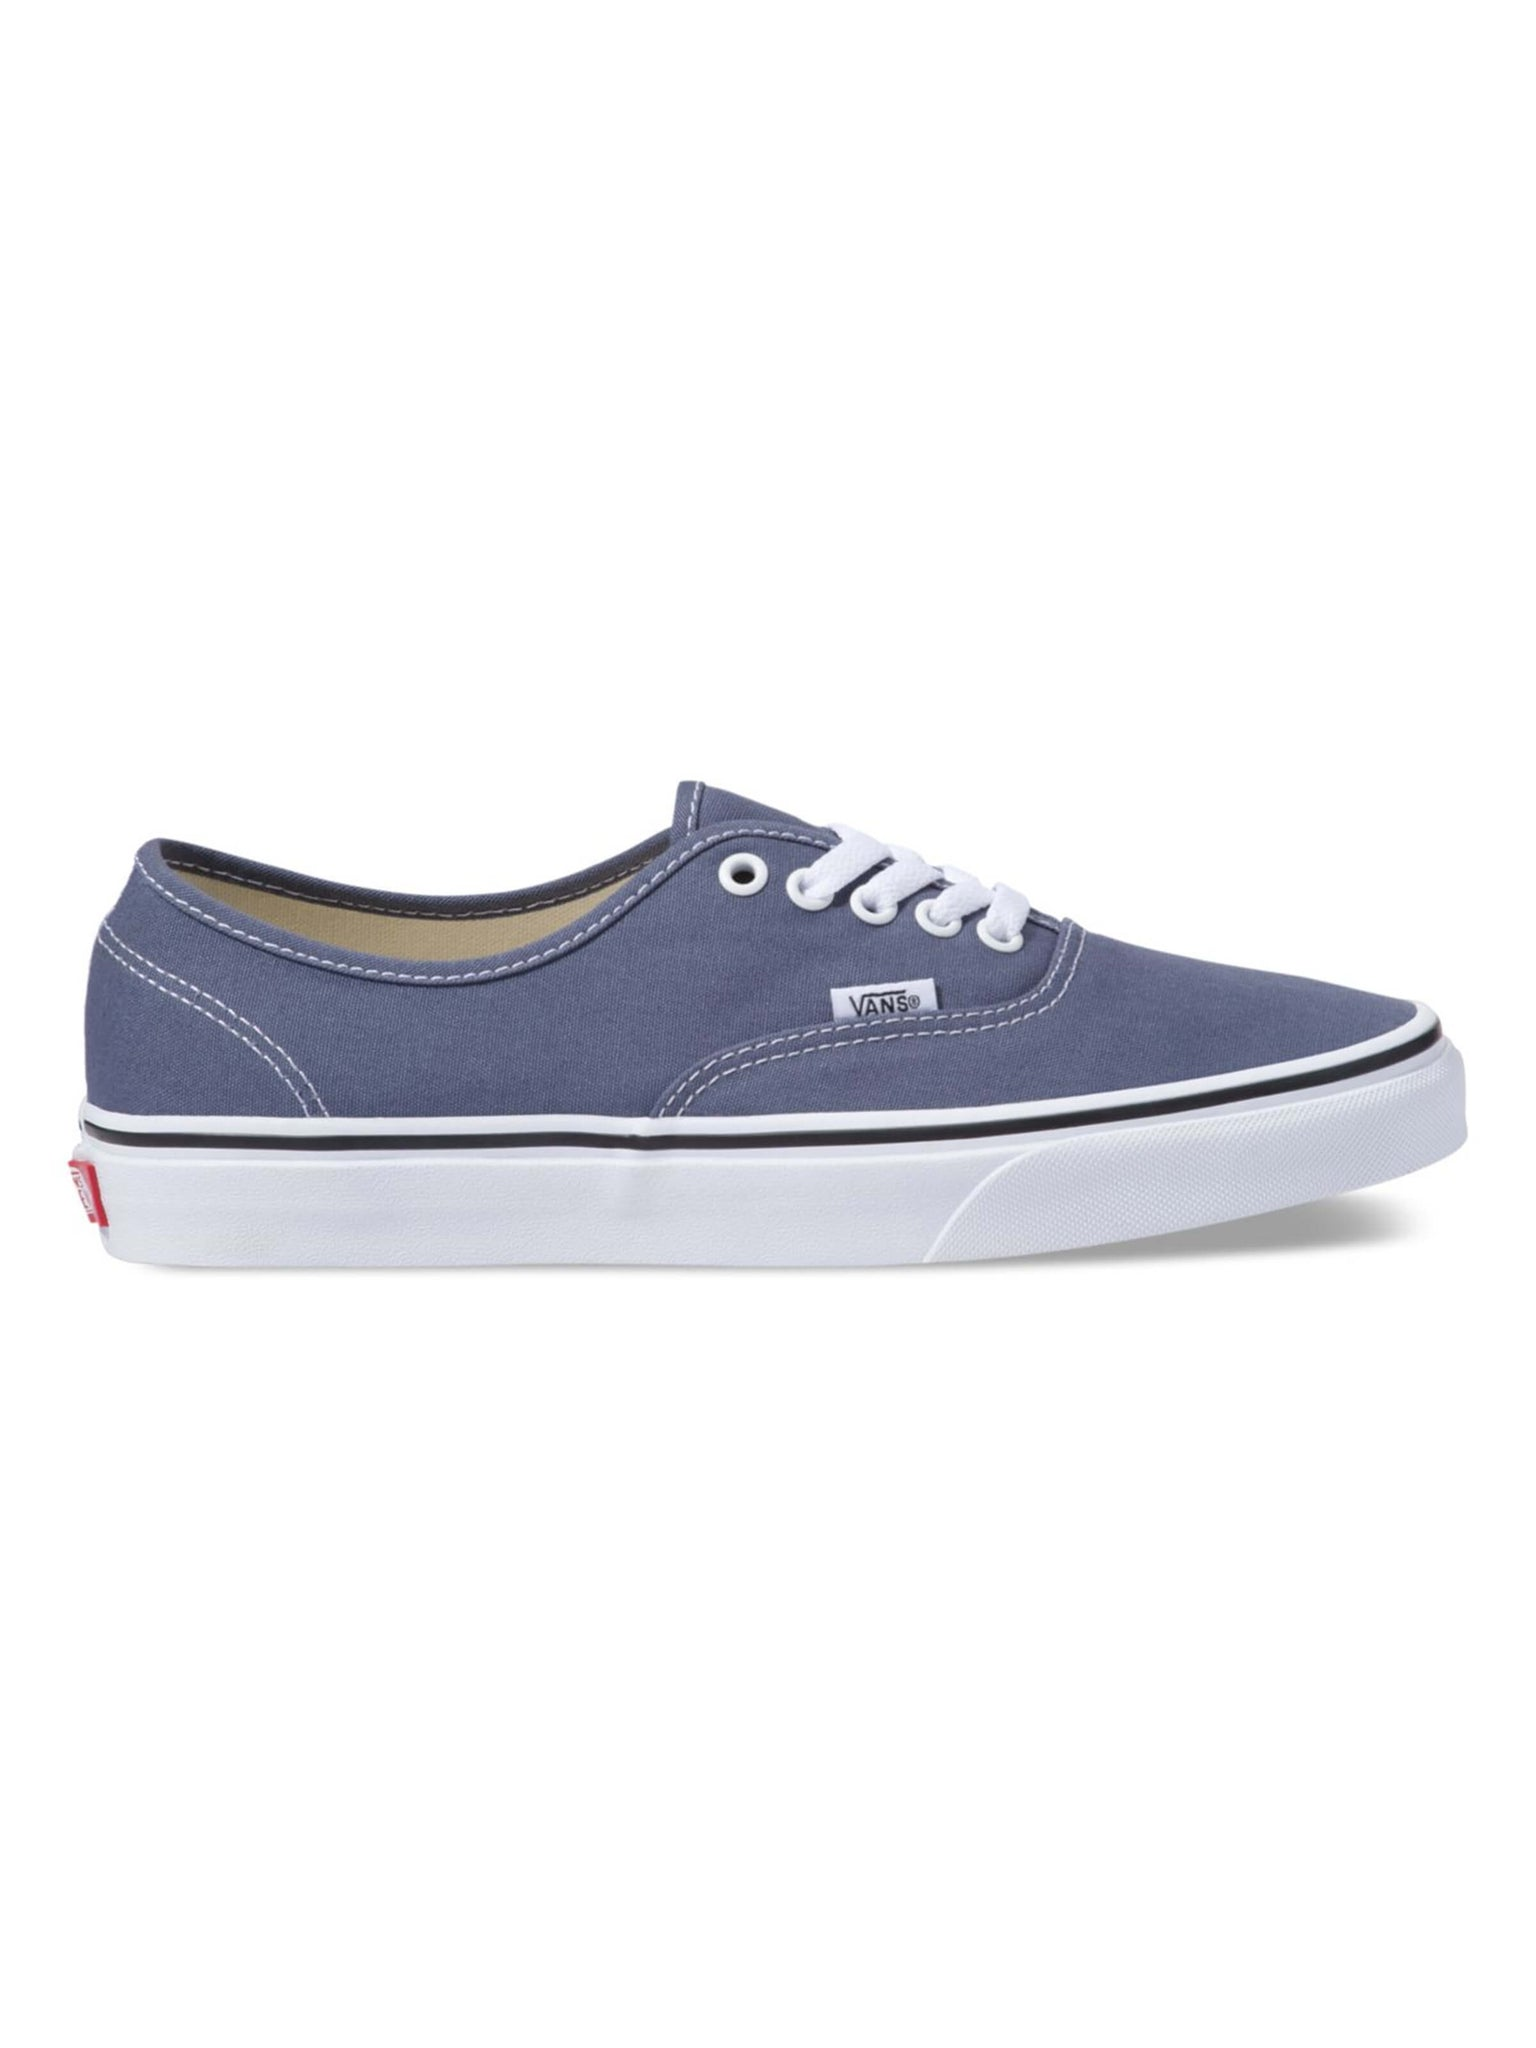 Vans Authentic - Grisaille